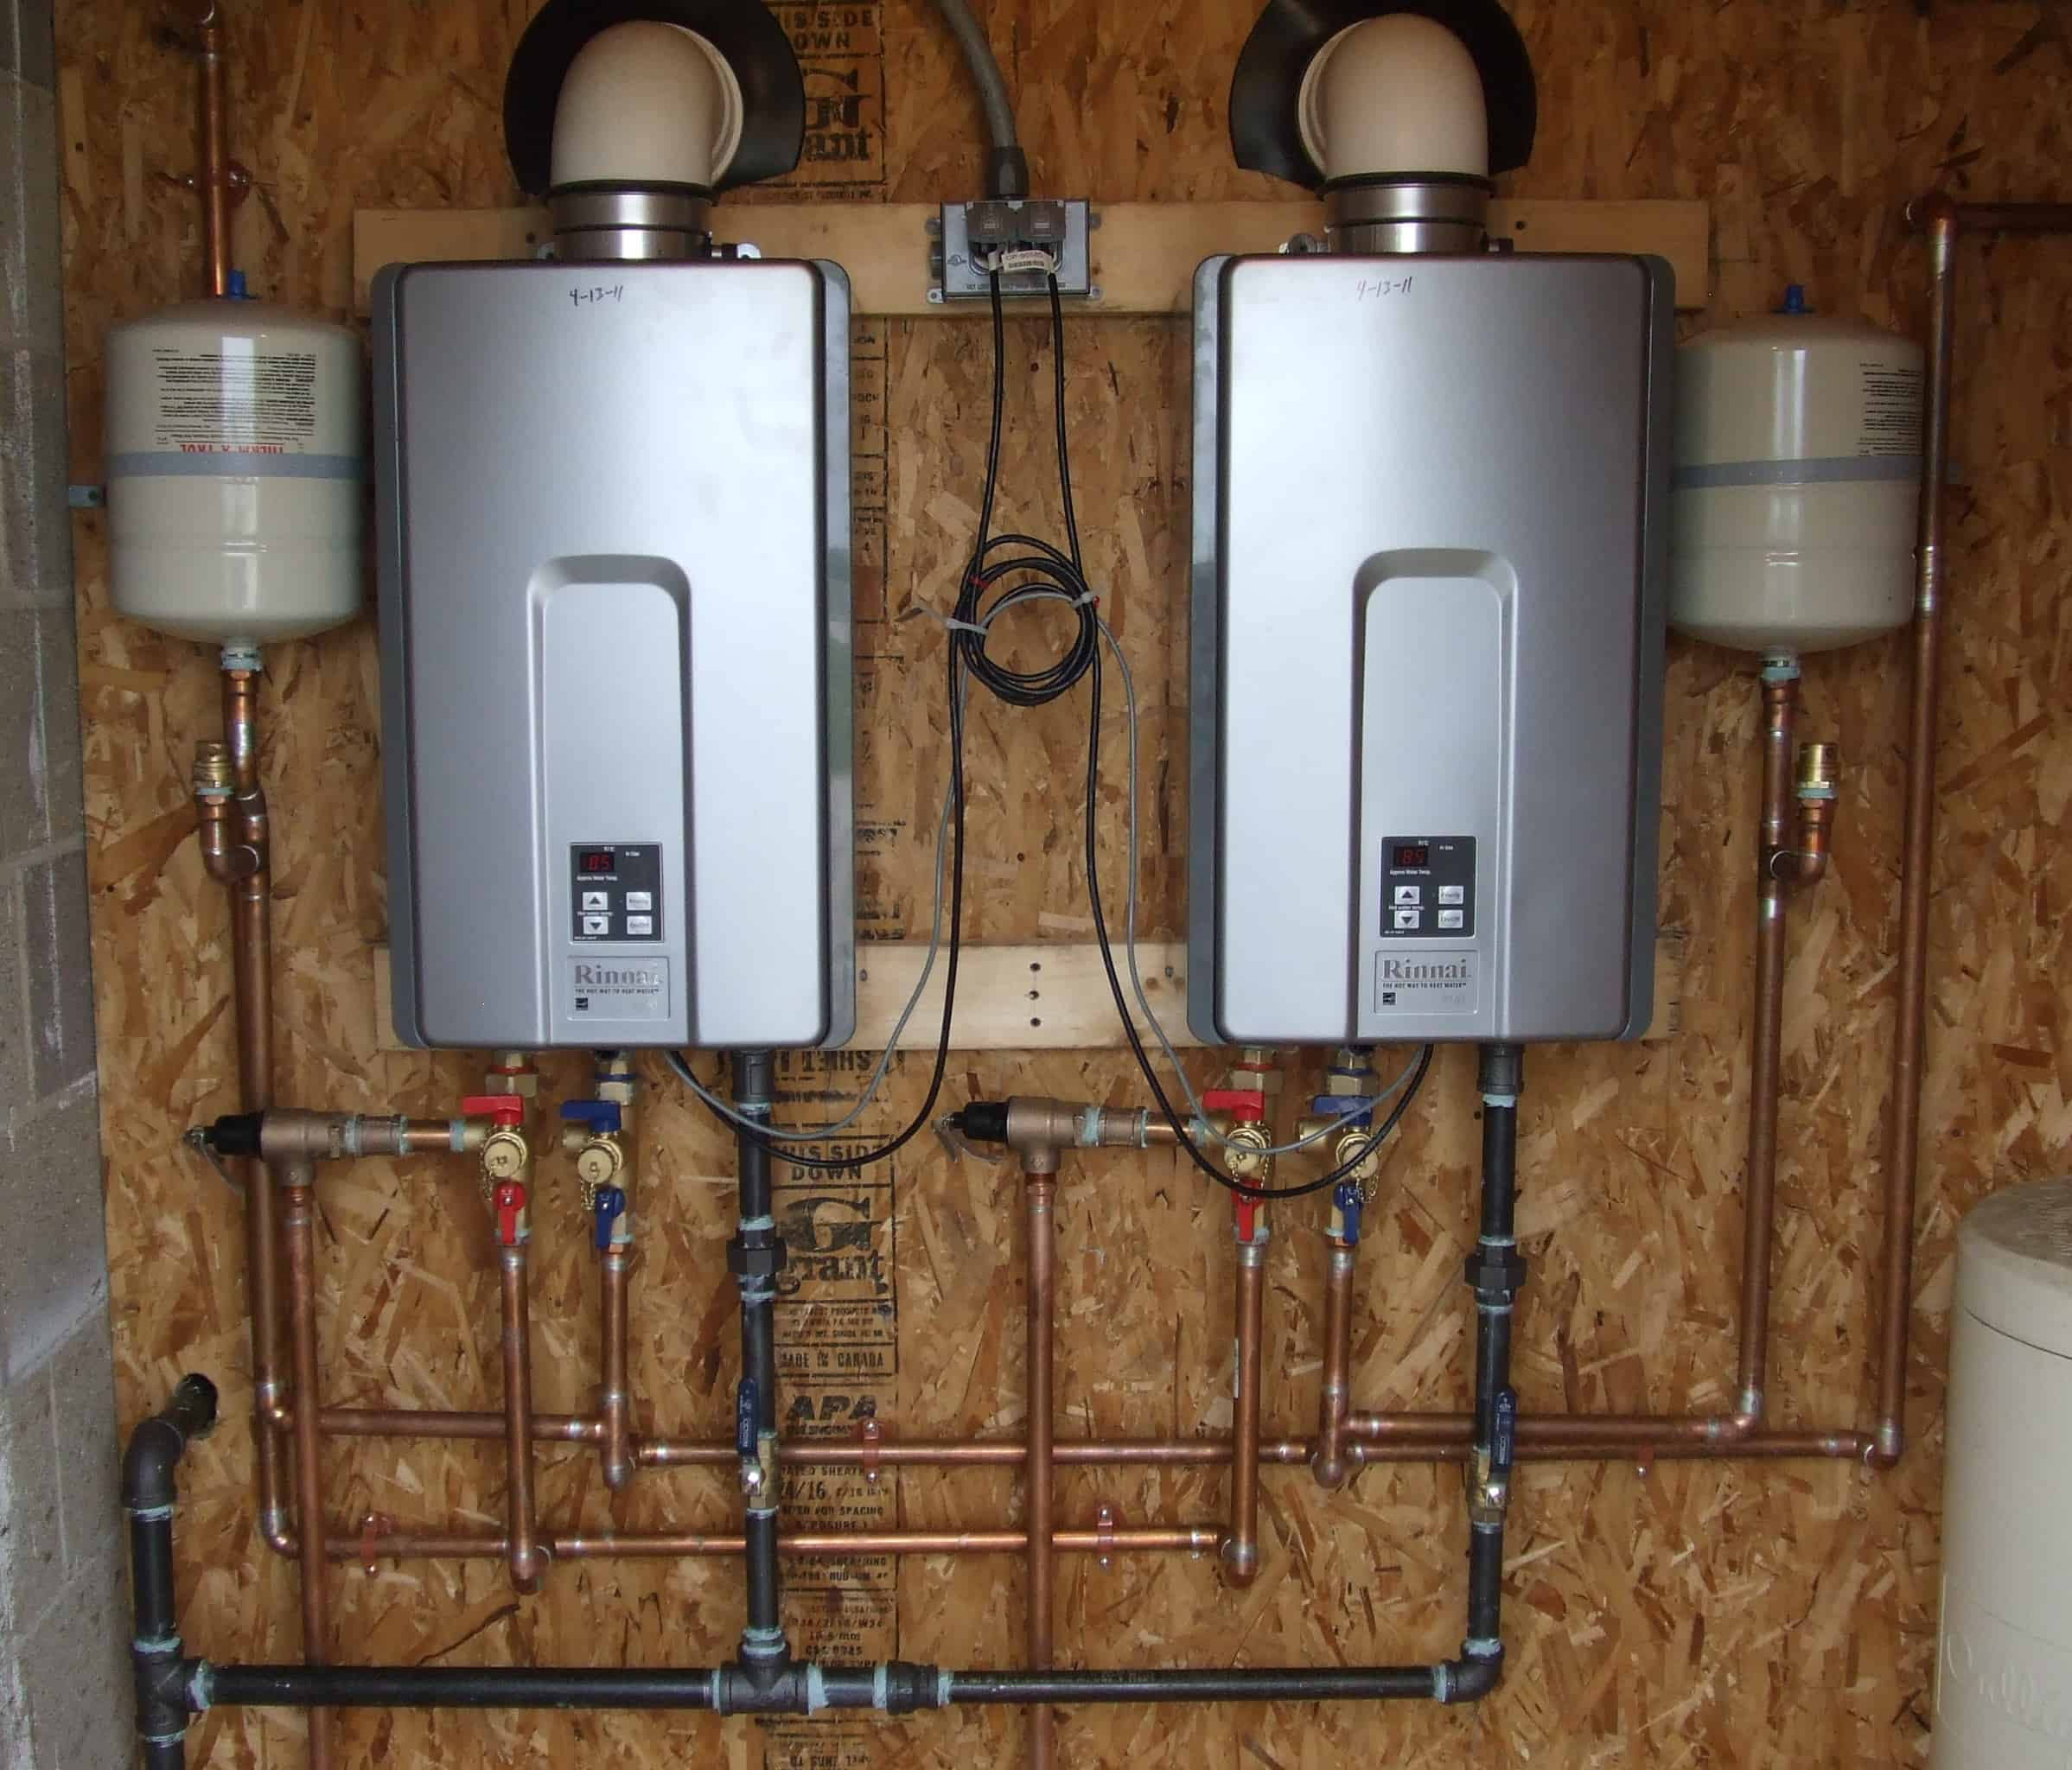 Water Heater Repair, Install or Upgrade to Tankless!